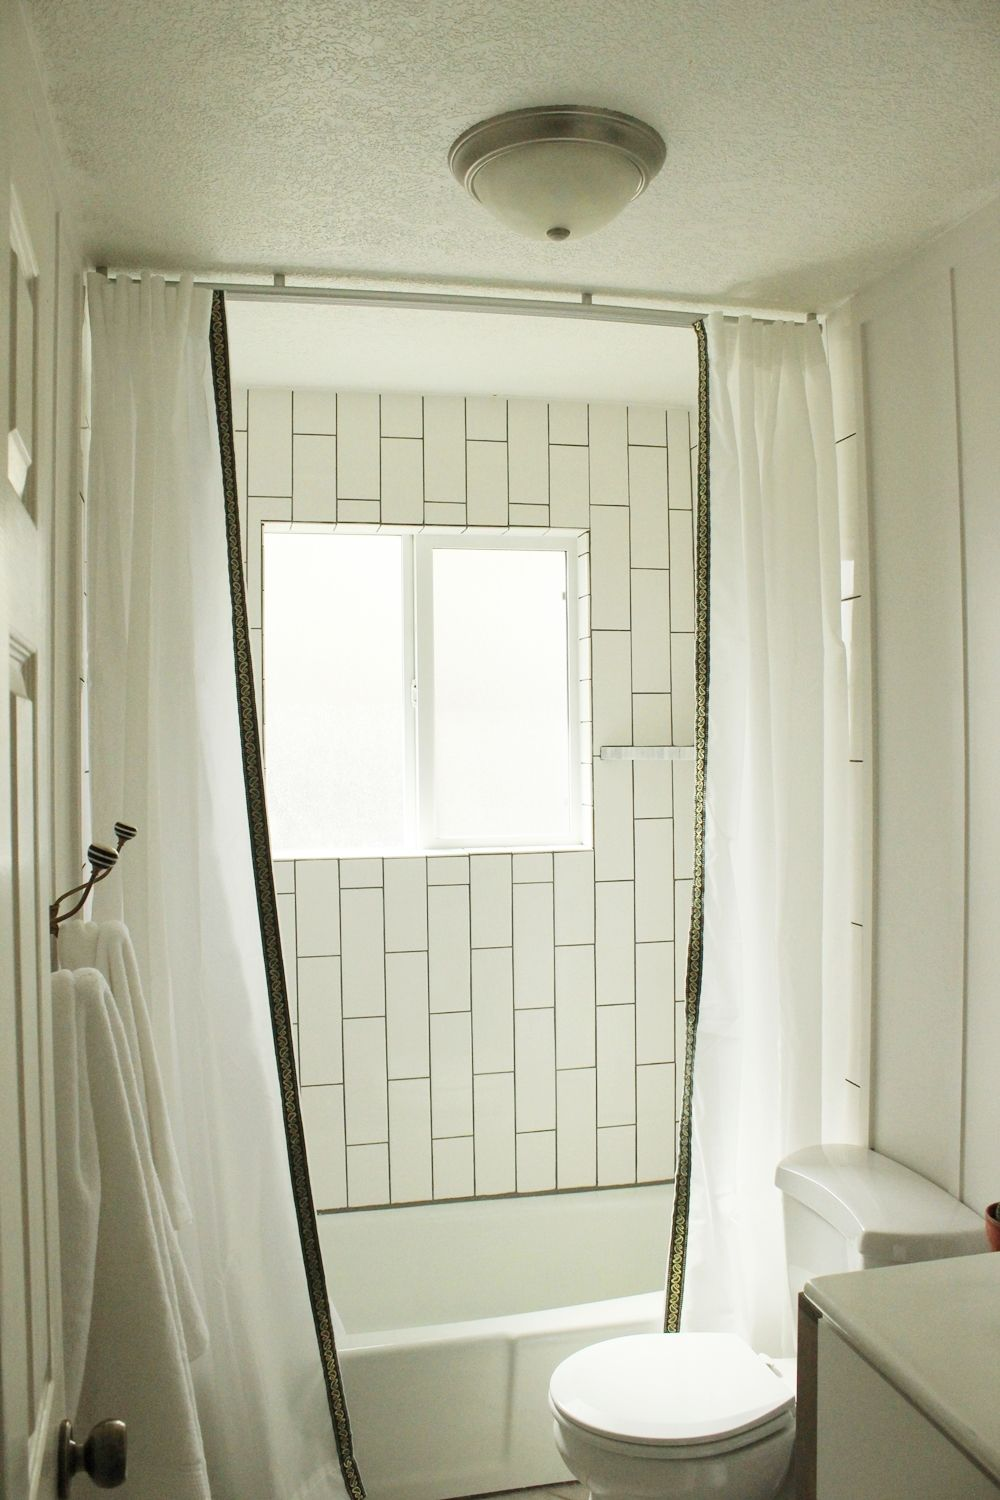 Mounting Curtain Rods How To Install A Ceiling Mounted Shower Curtain